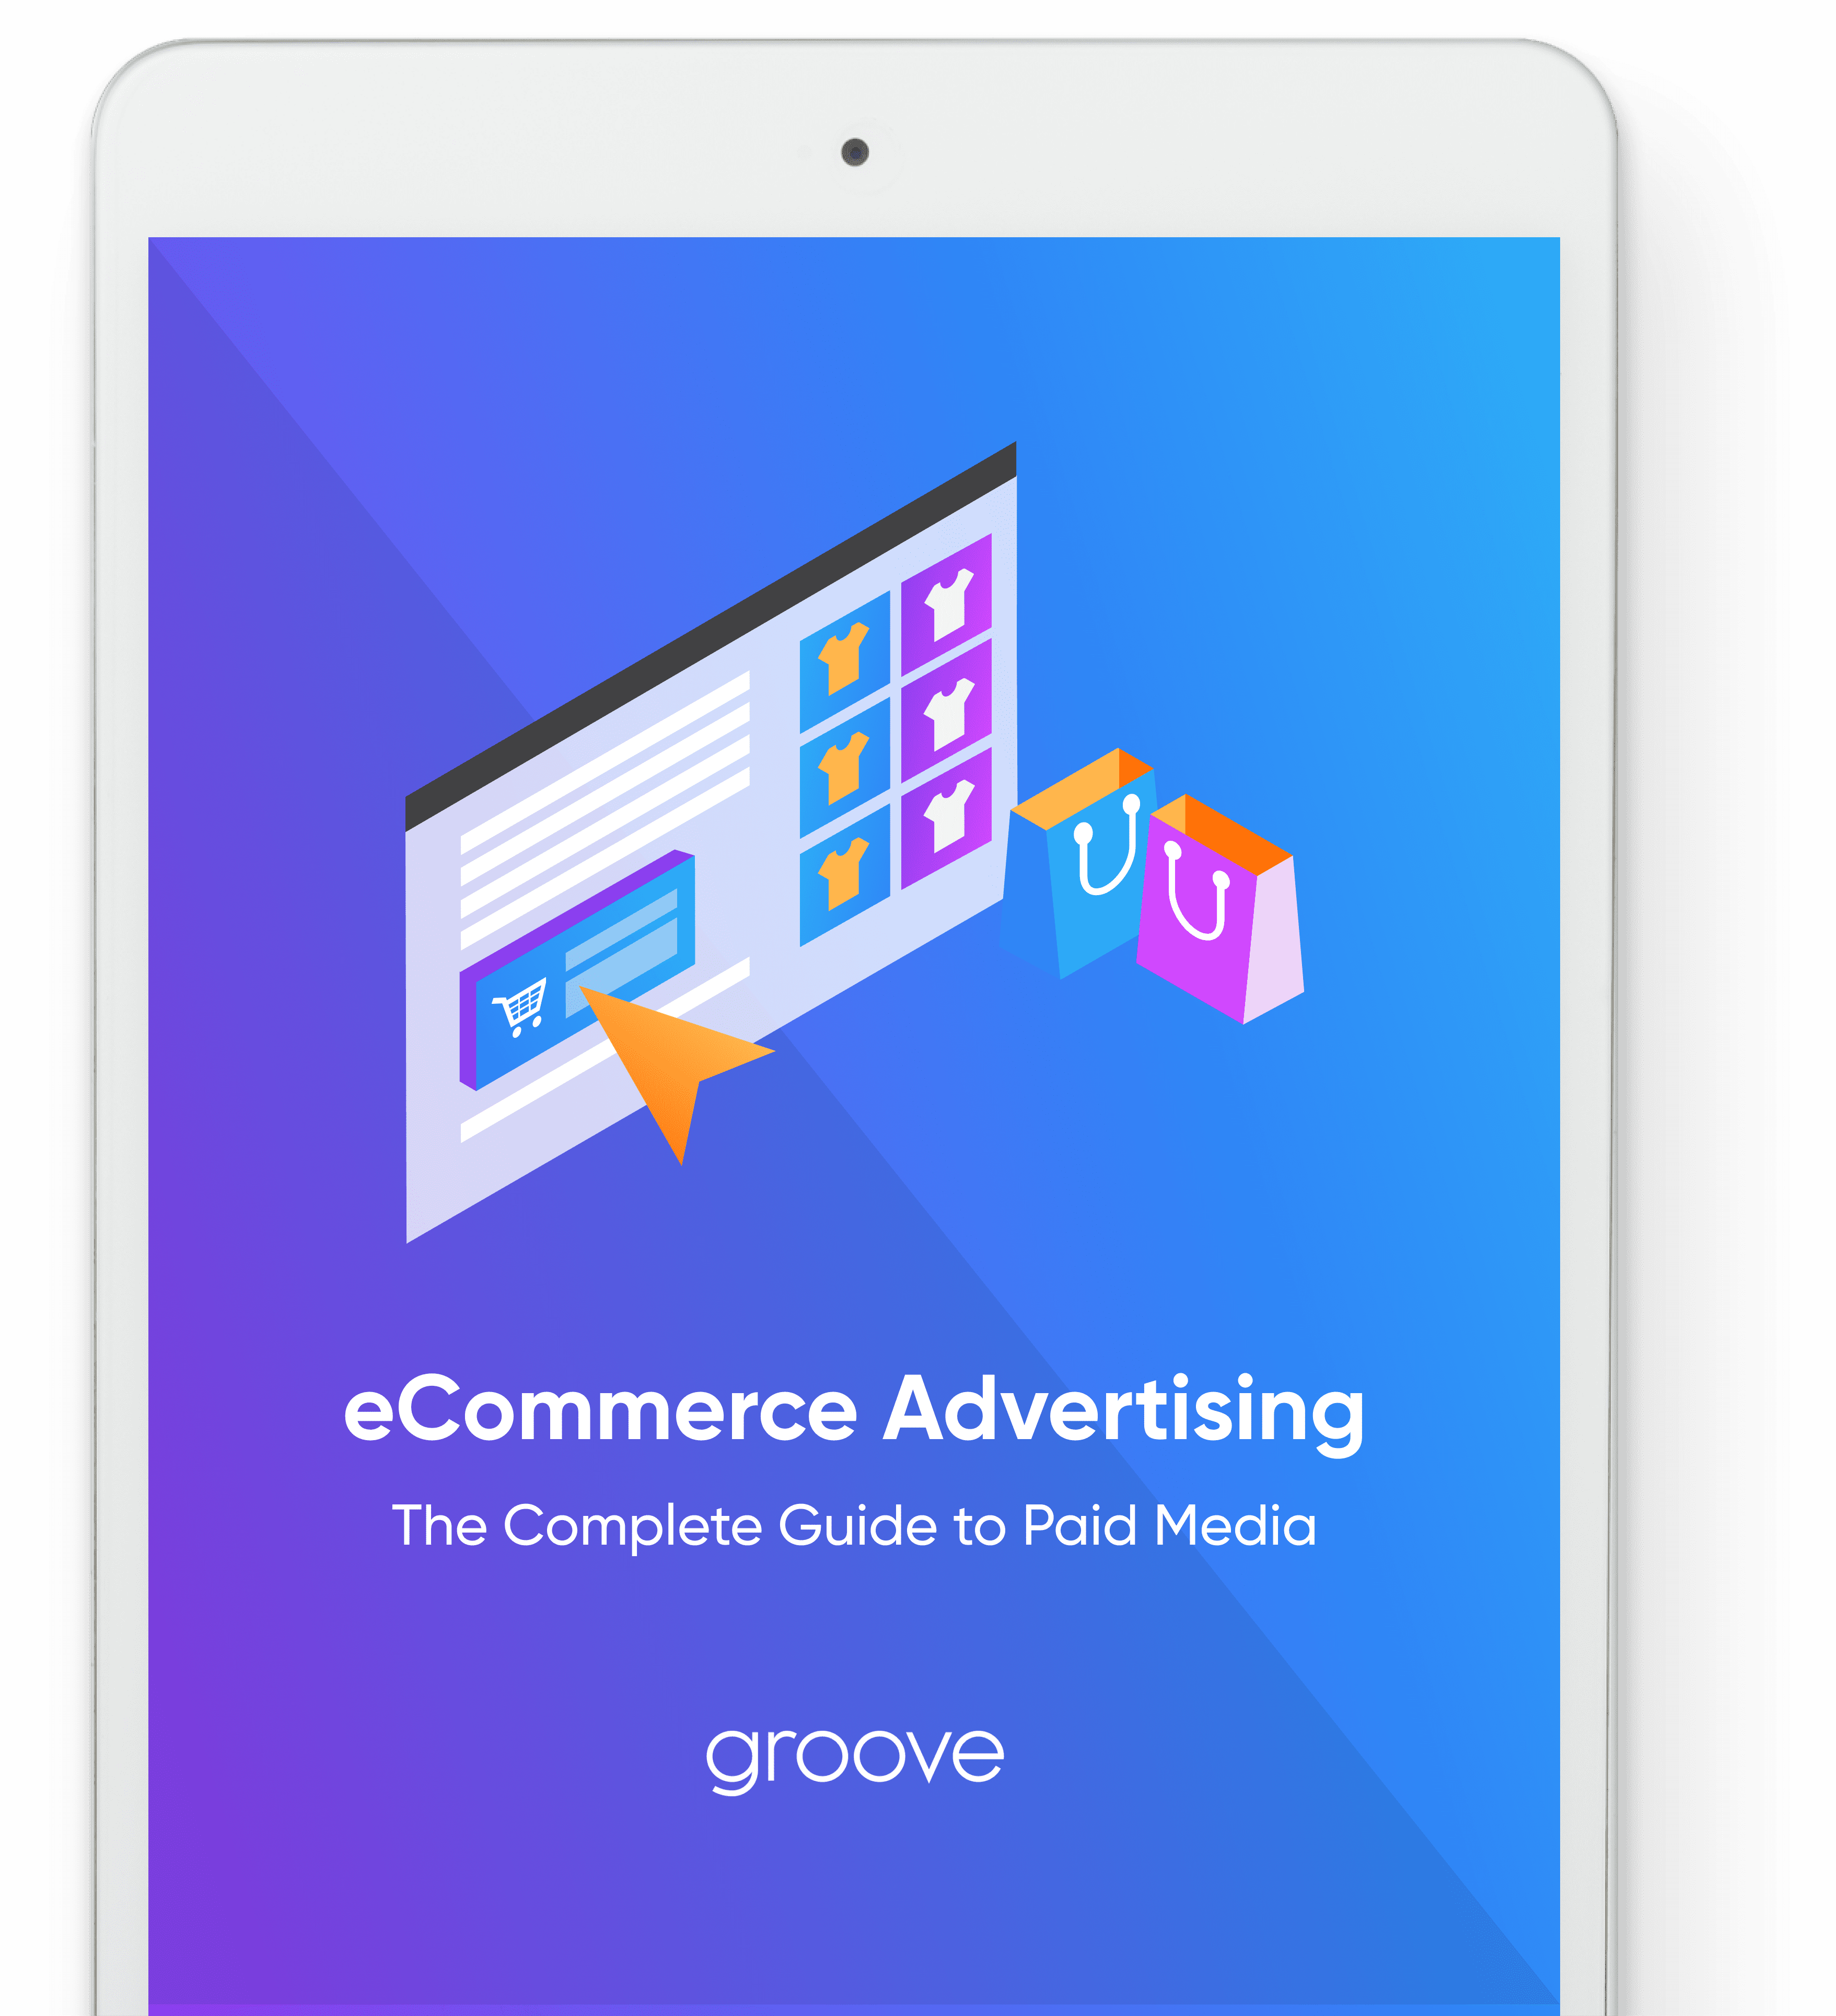 eCommerce Advertising: The Complete Guide To Paid Media